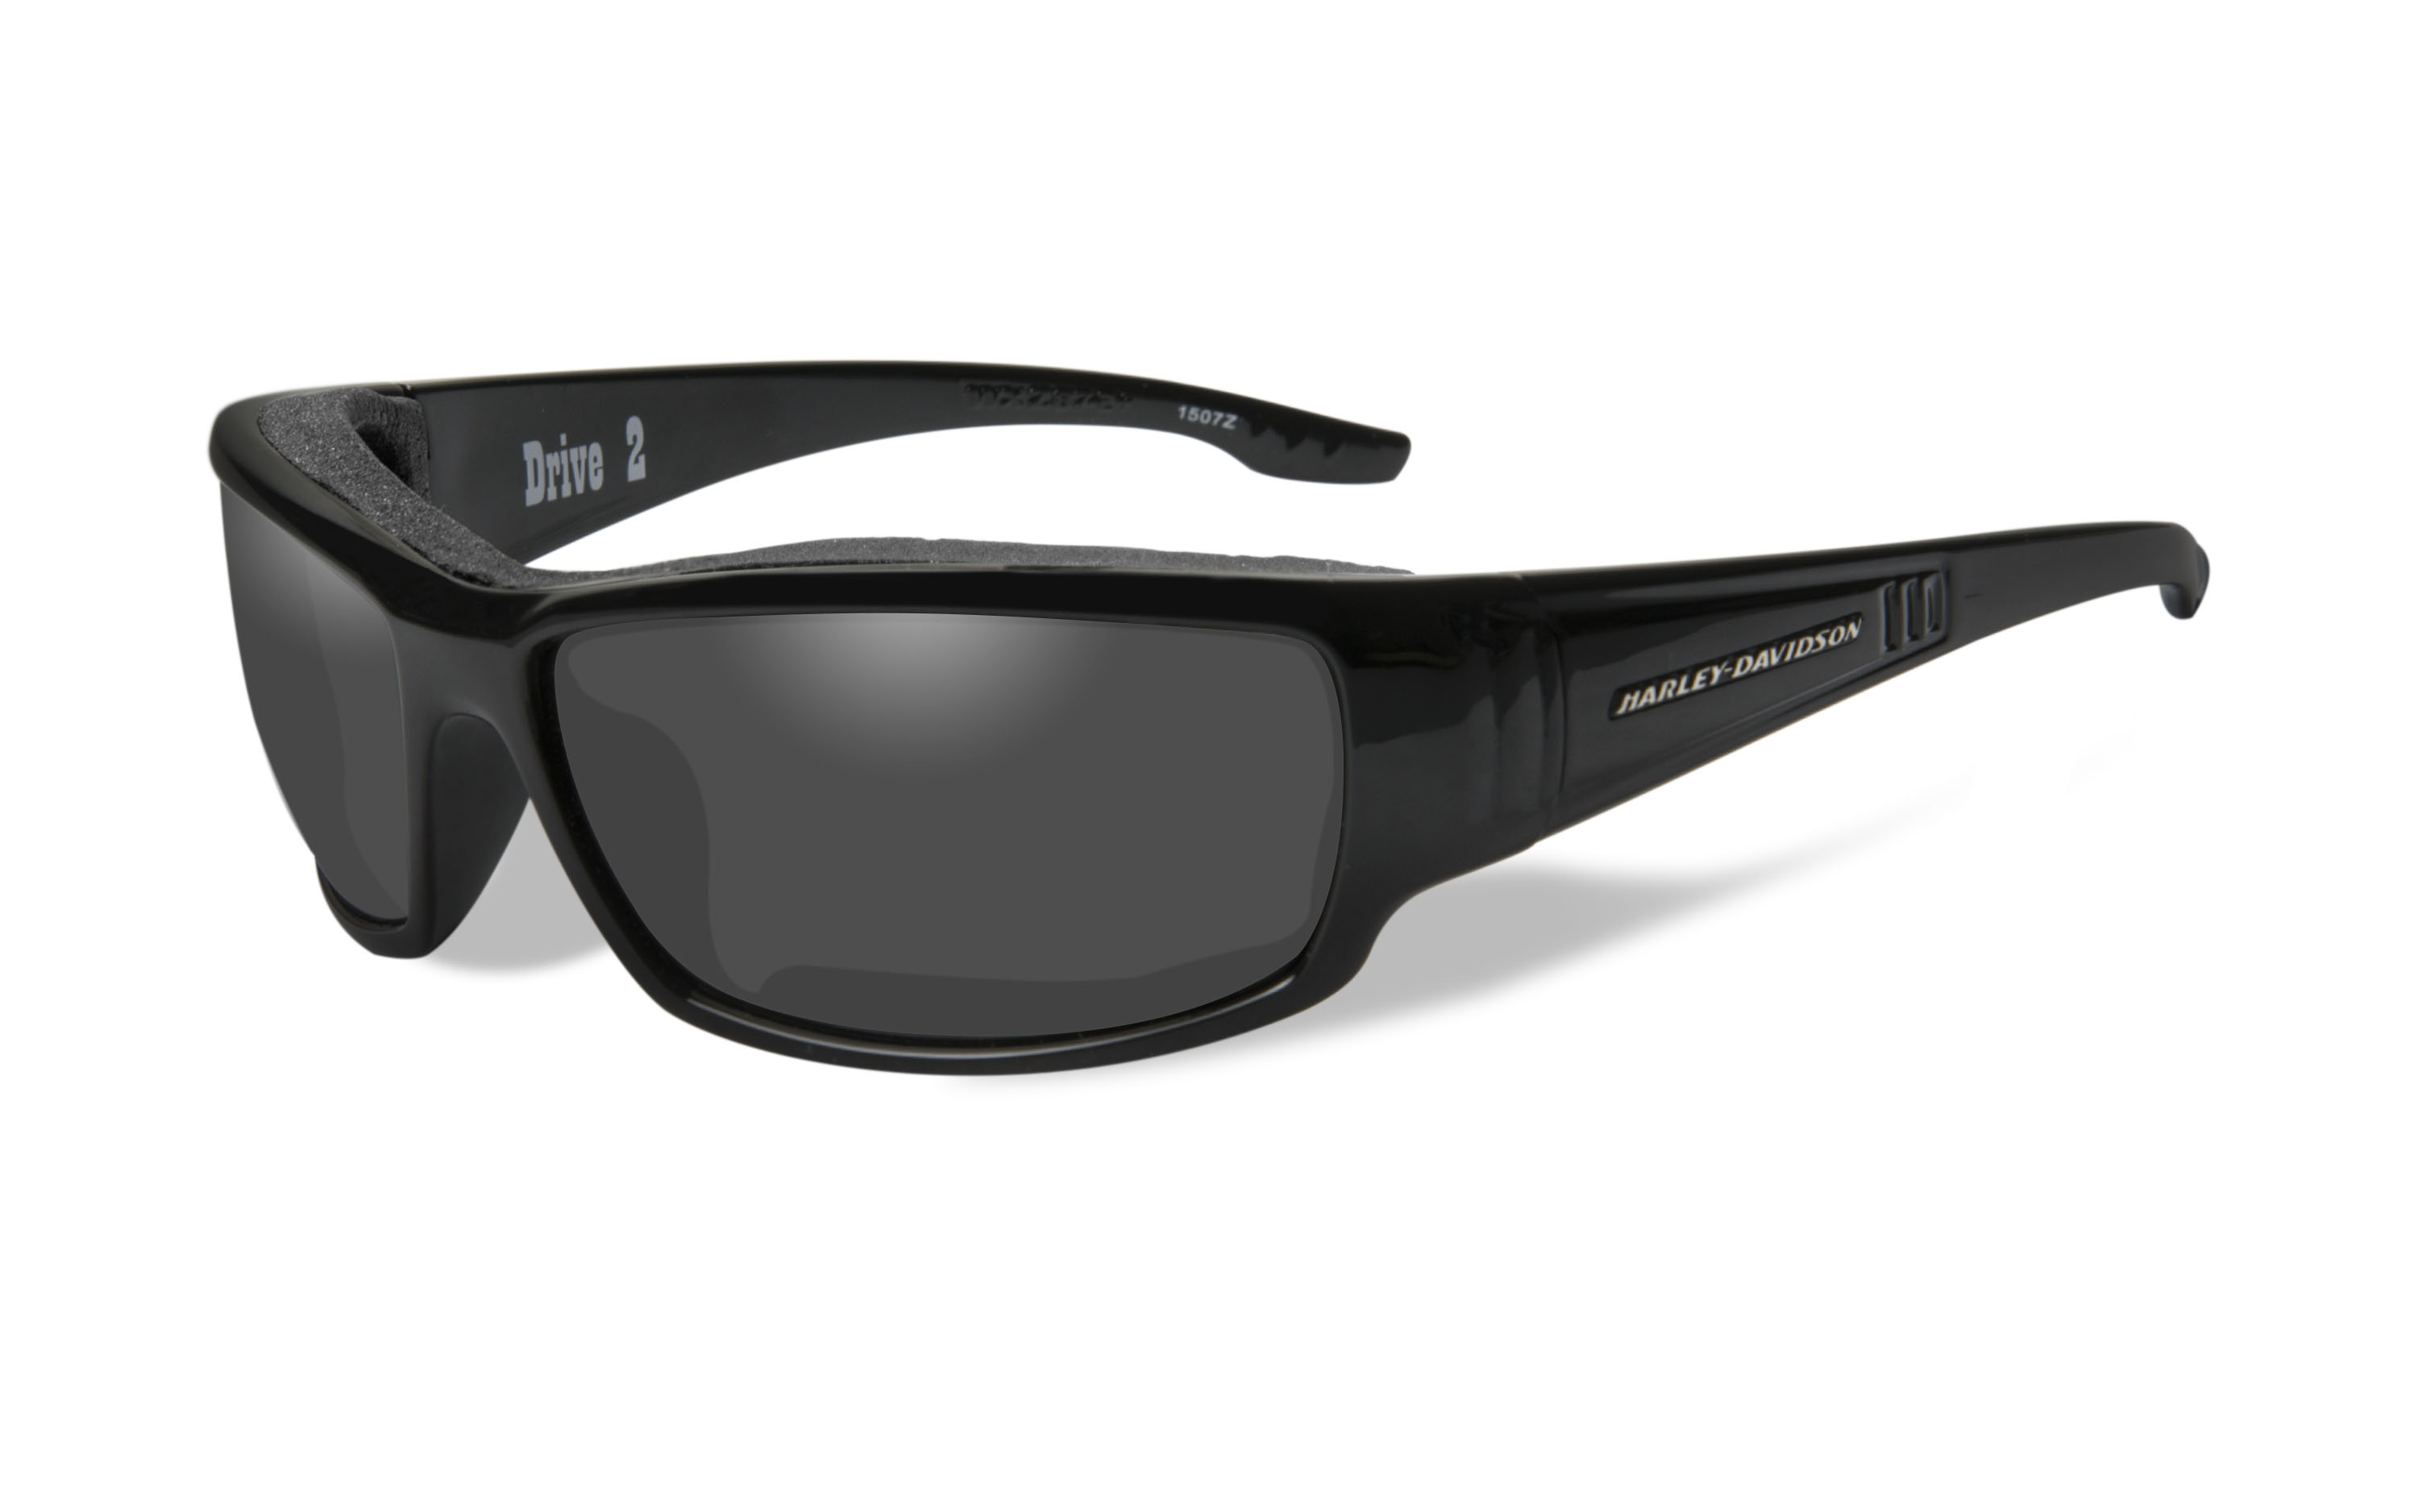 a78876ffc3d6 Harley-Davidson® Wiley-X® Drive 2 Riding Sunglasses | Grey Lenses